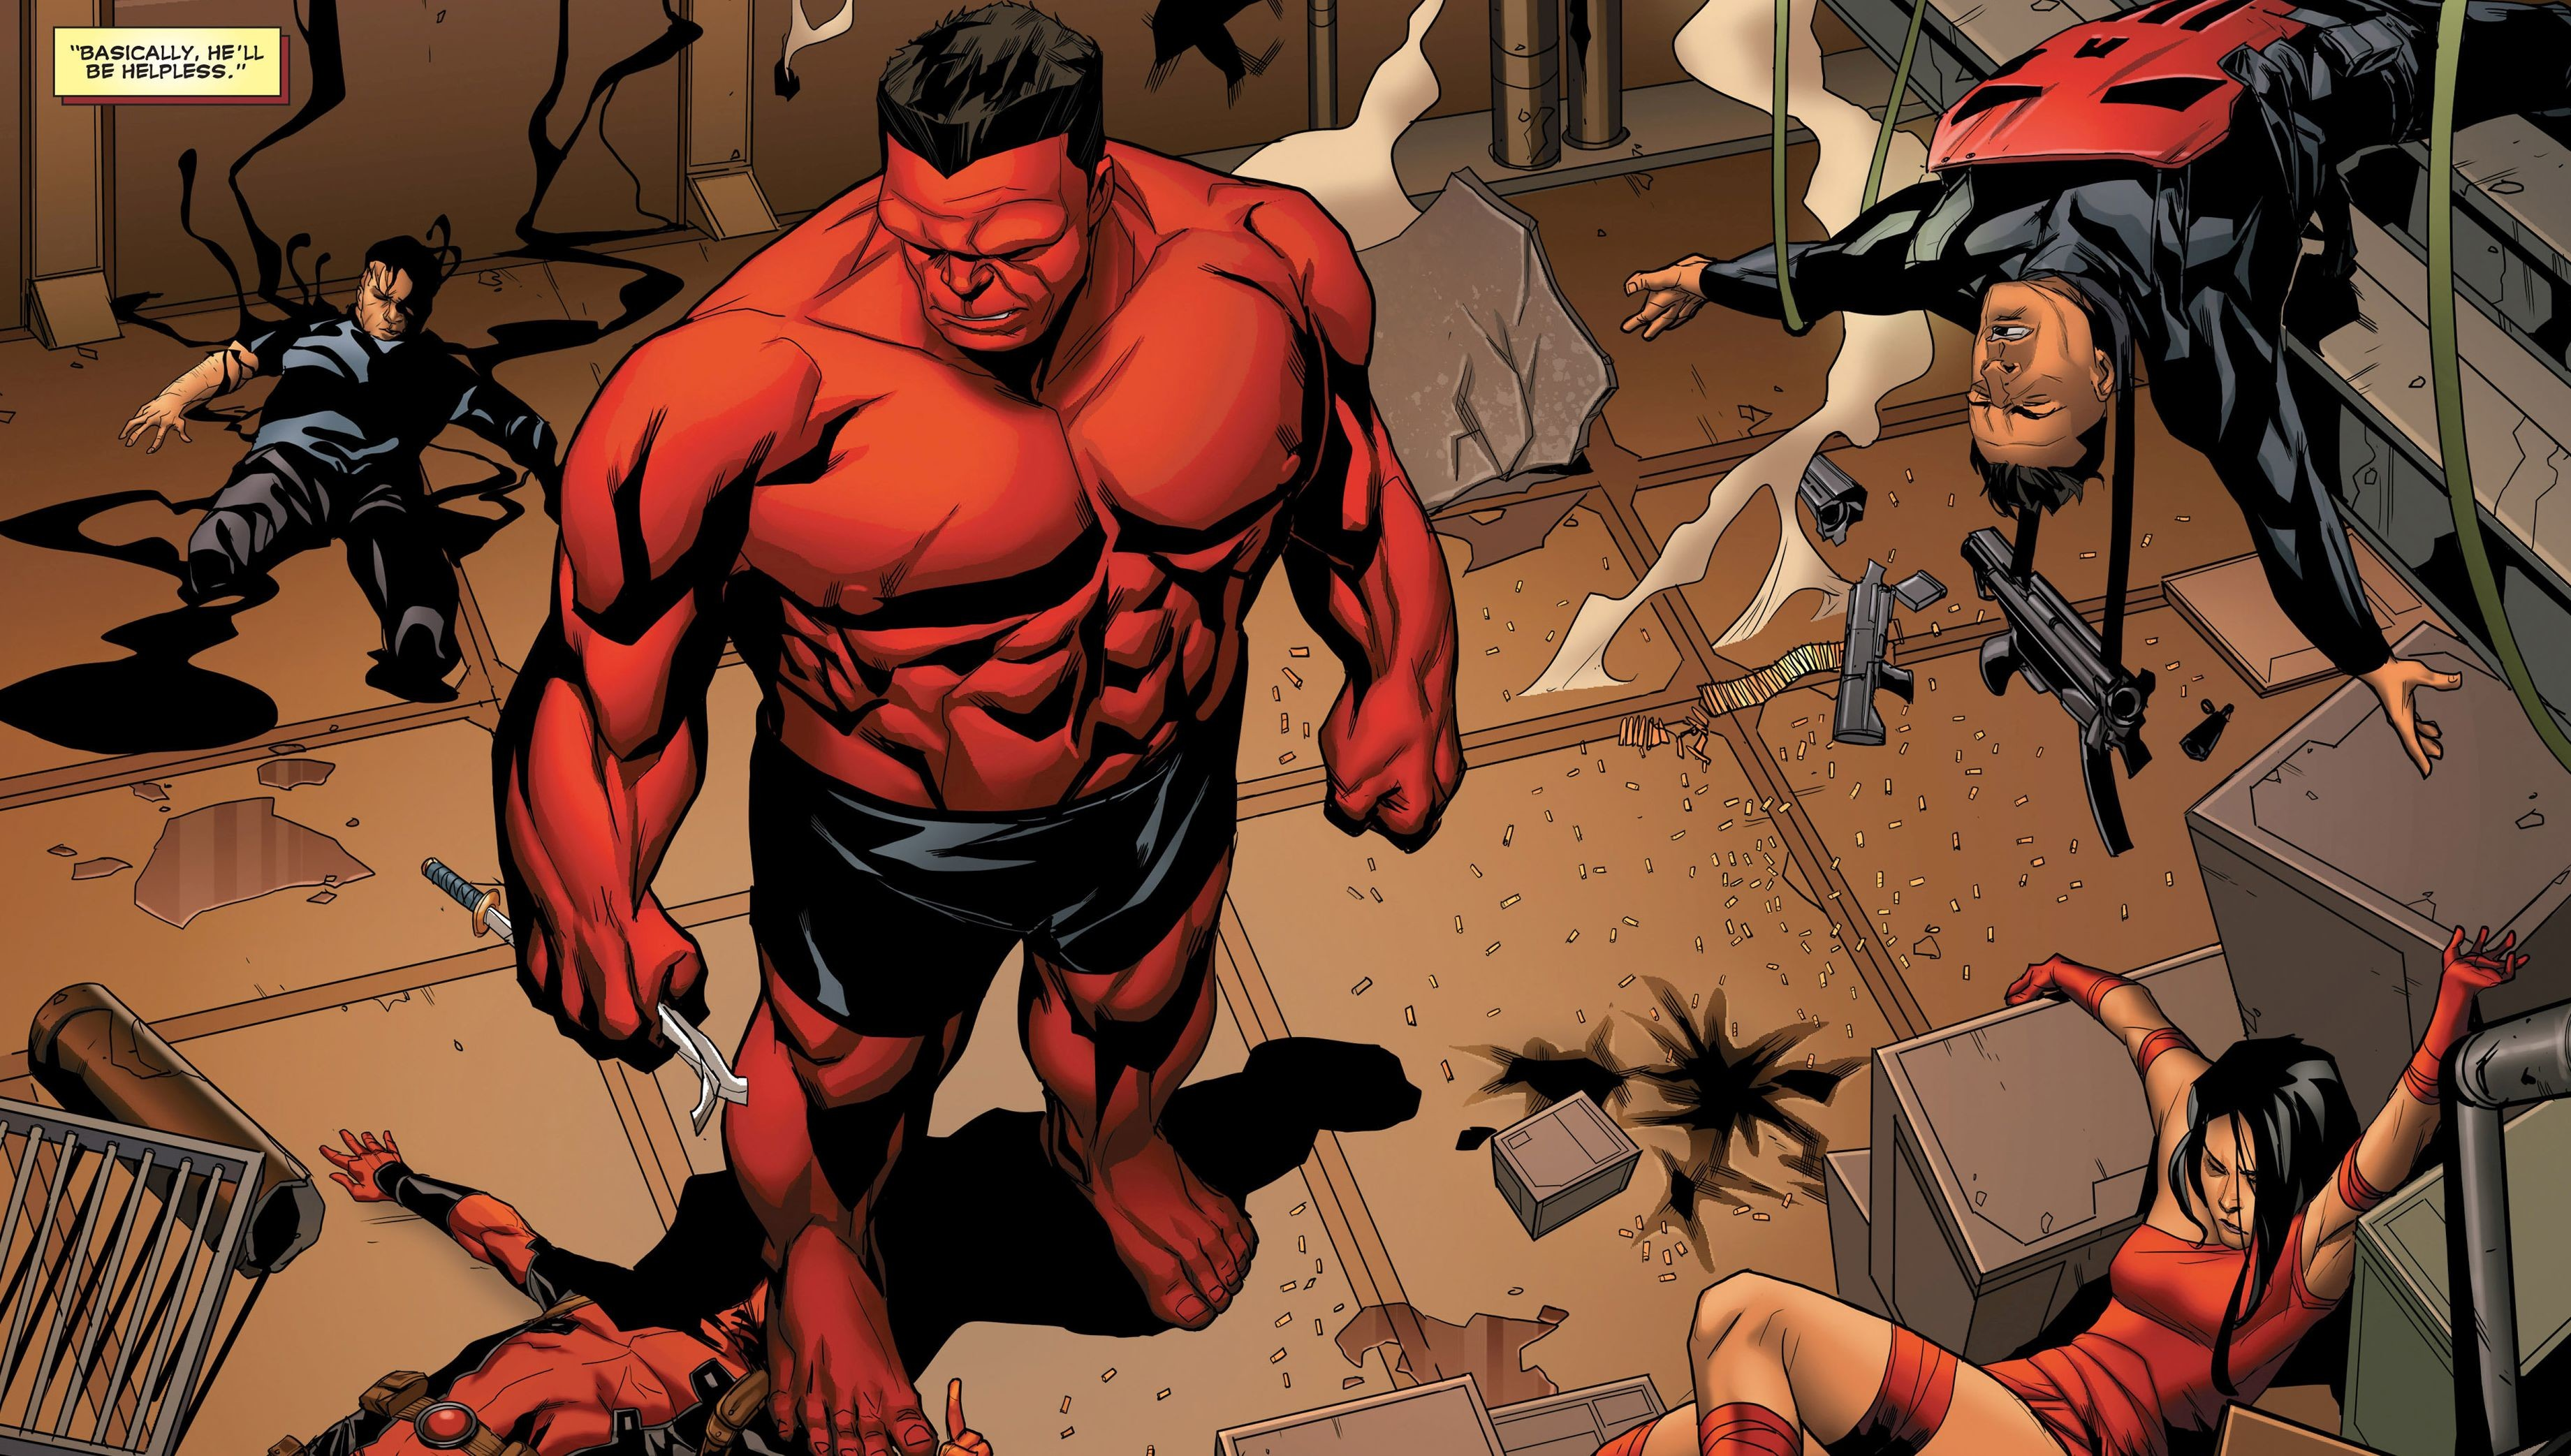 Res: 3681x2085, Red Hulk · HD Wallpaper | Background Image ID:783155